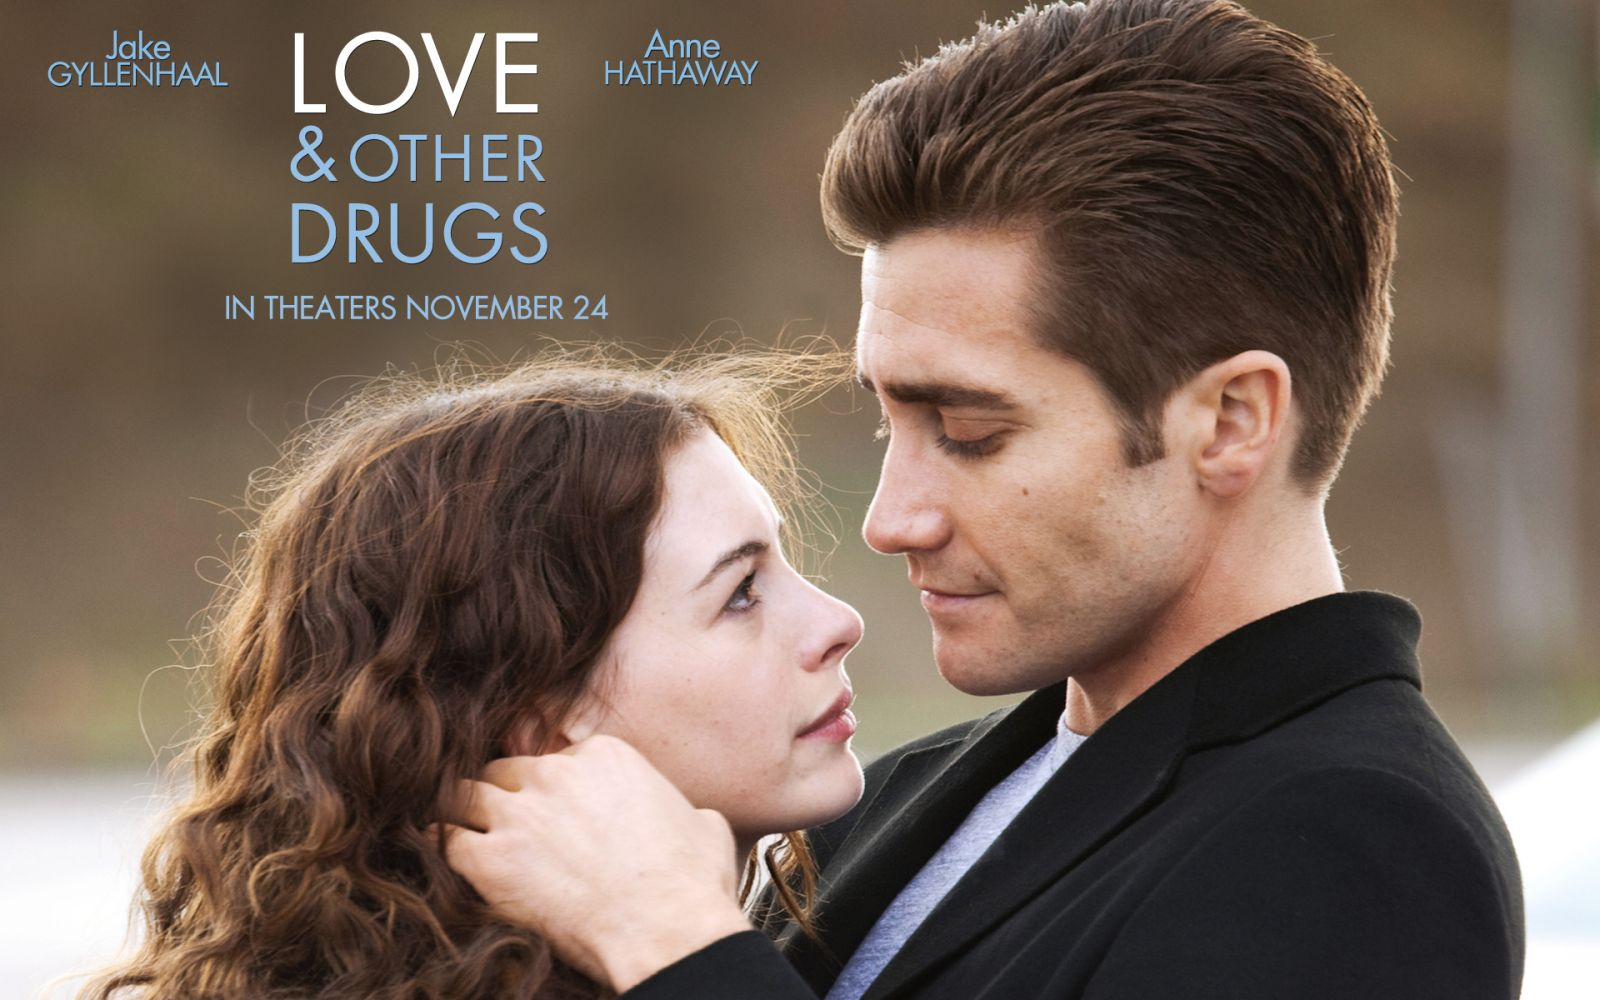 http://2.bp.blogspot.com/_CXiEfIjzFOI/TRtVS2PDpqI/AAAAAAAAEmw/ygDn68M7VSg/s1600/love_and_other_drugs_wallpaper_03.jpg